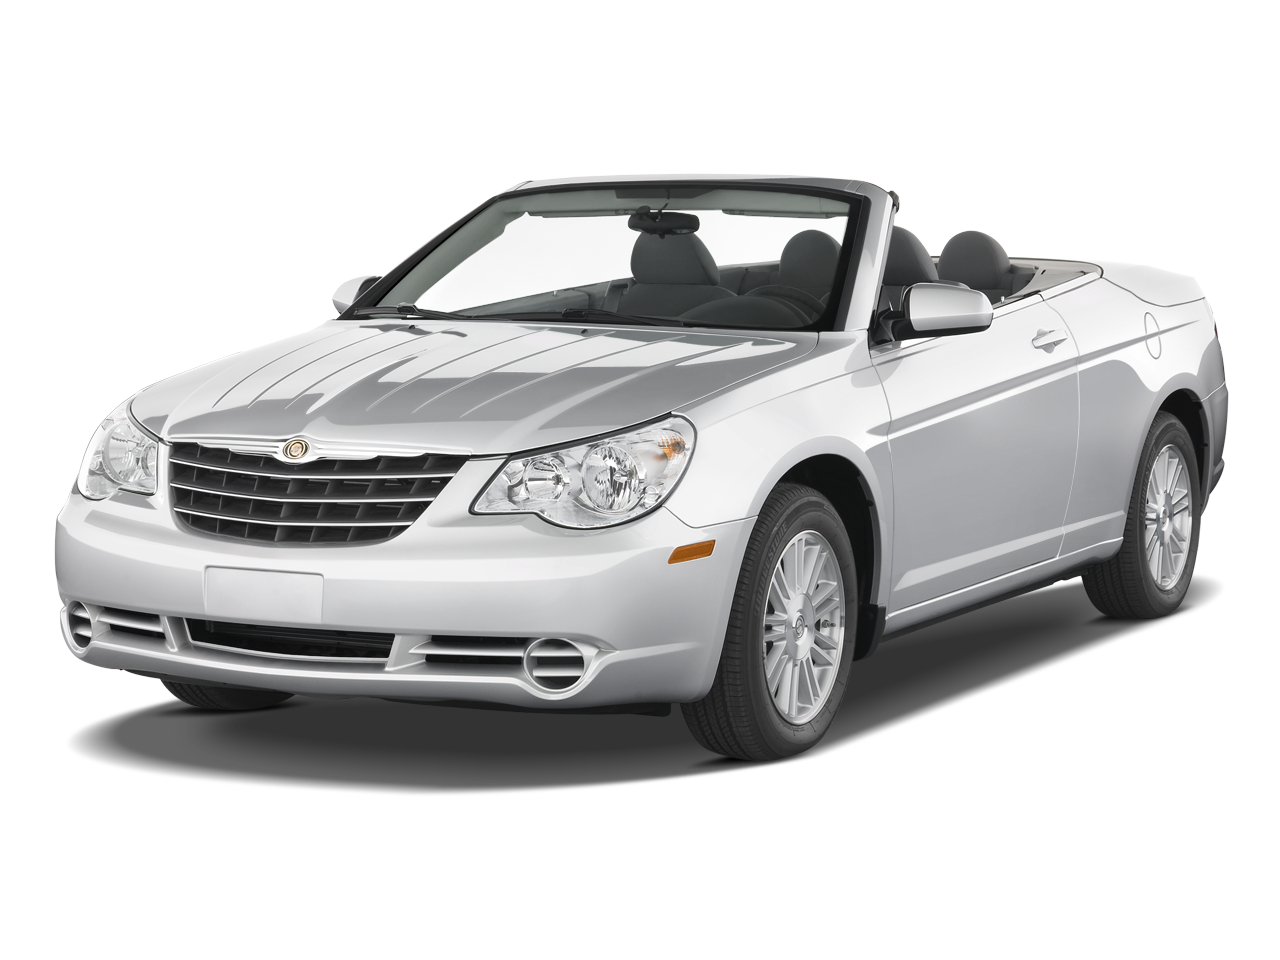 2007 chrysler sebring convertible new cars trucks and. Black Bedroom Furniture Sets. Home Design Ideas